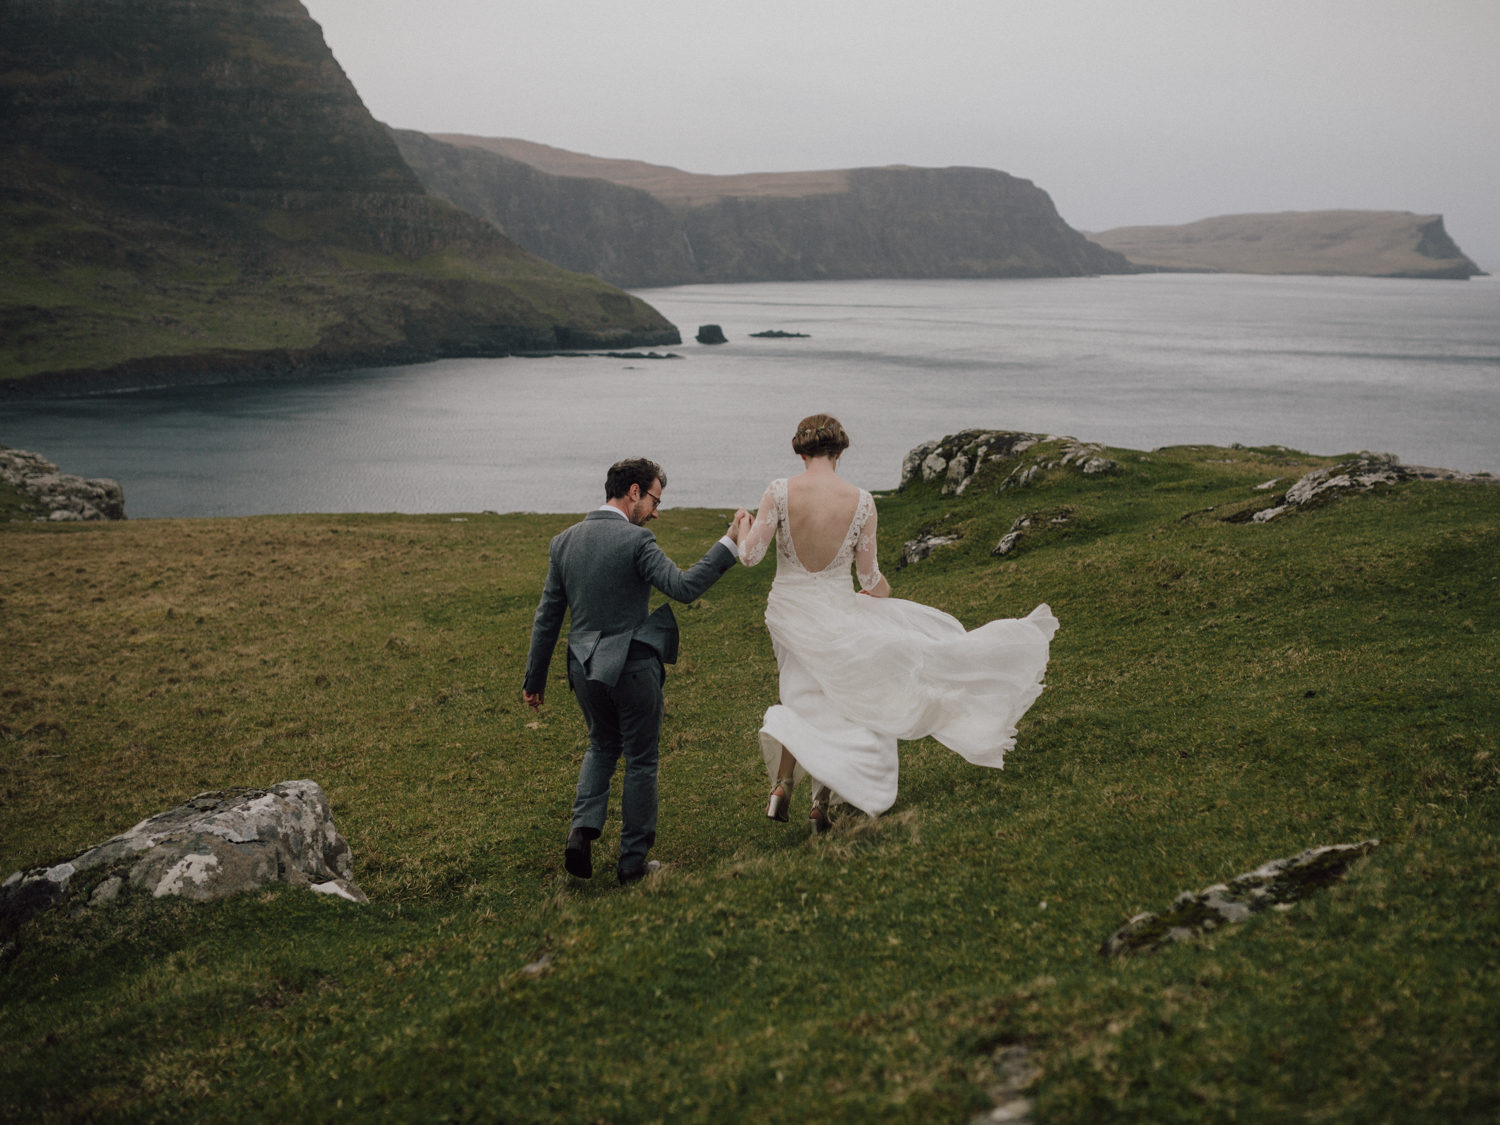 capyture-wedding-photographer-destination-nature-intimate-wedding-isle-of-skye-scotland-847